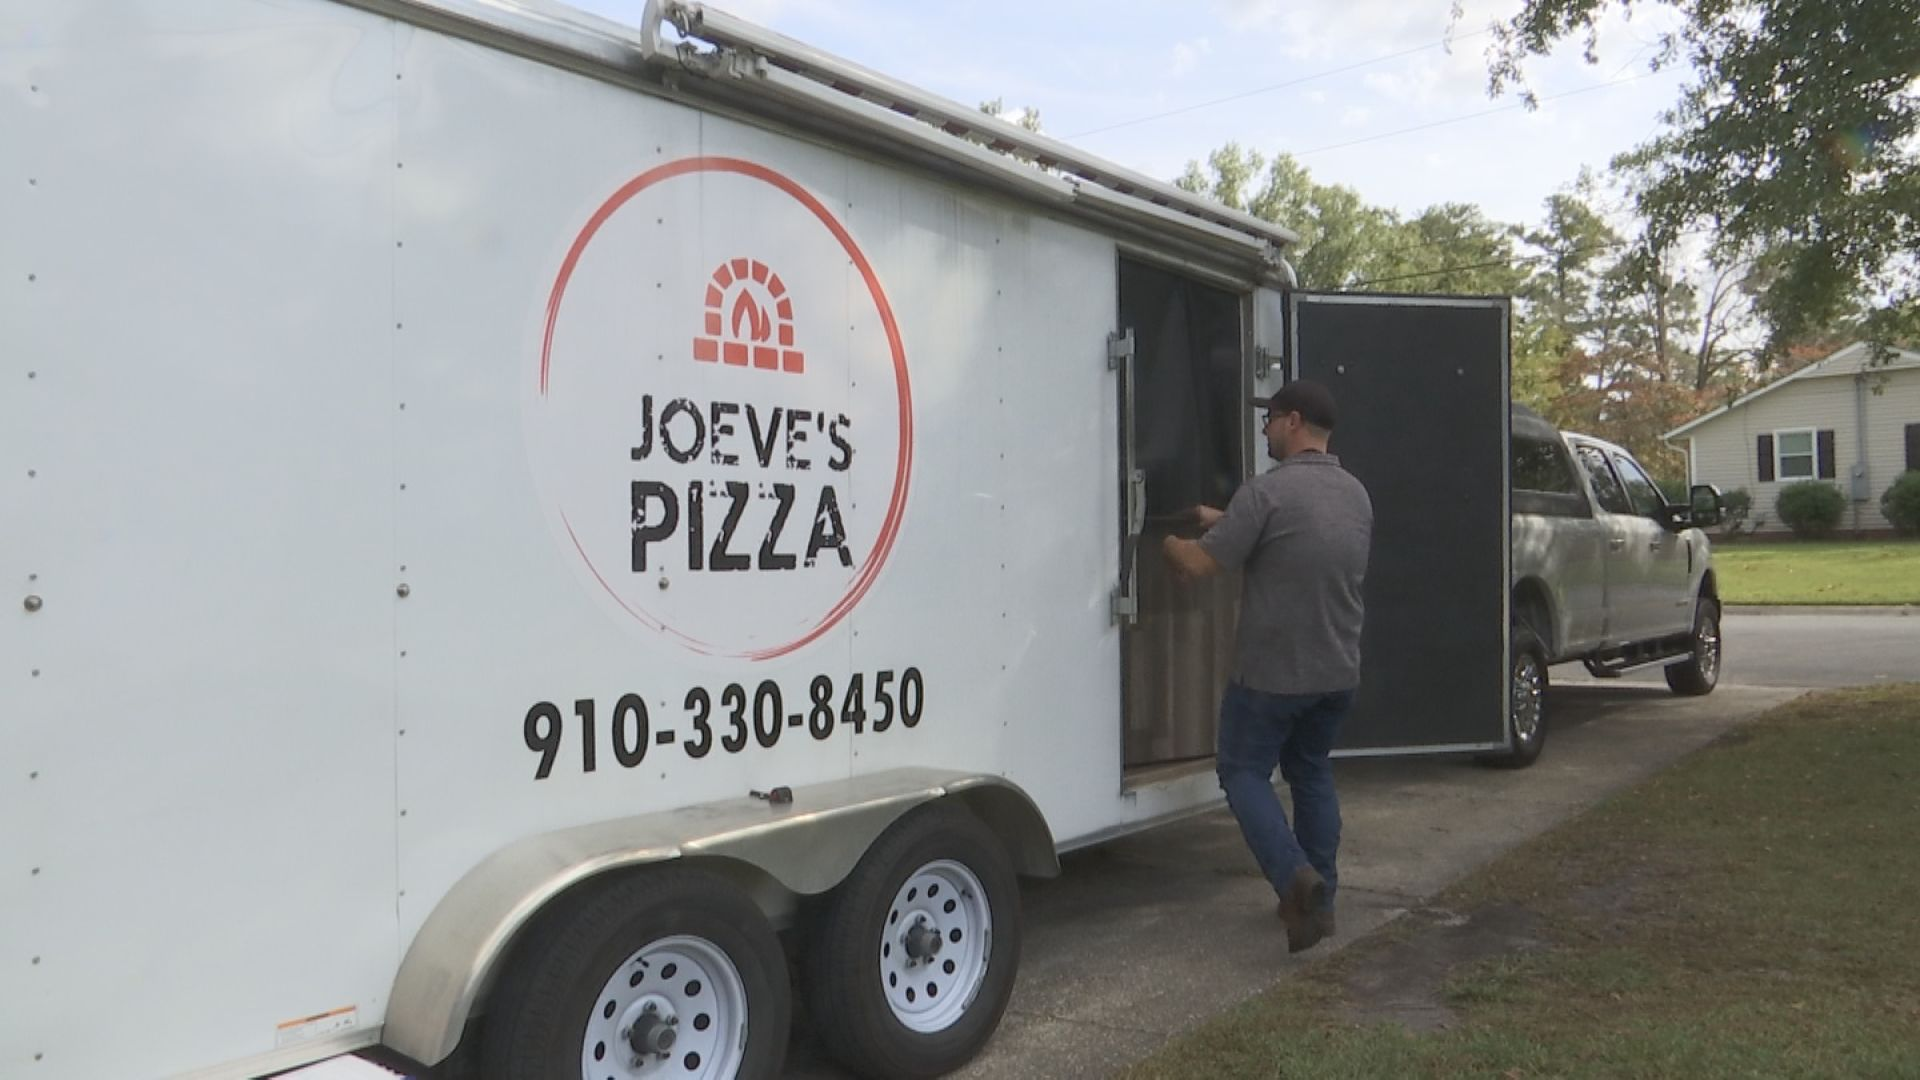 City of Jacksonville considering proposal to allow food trucks